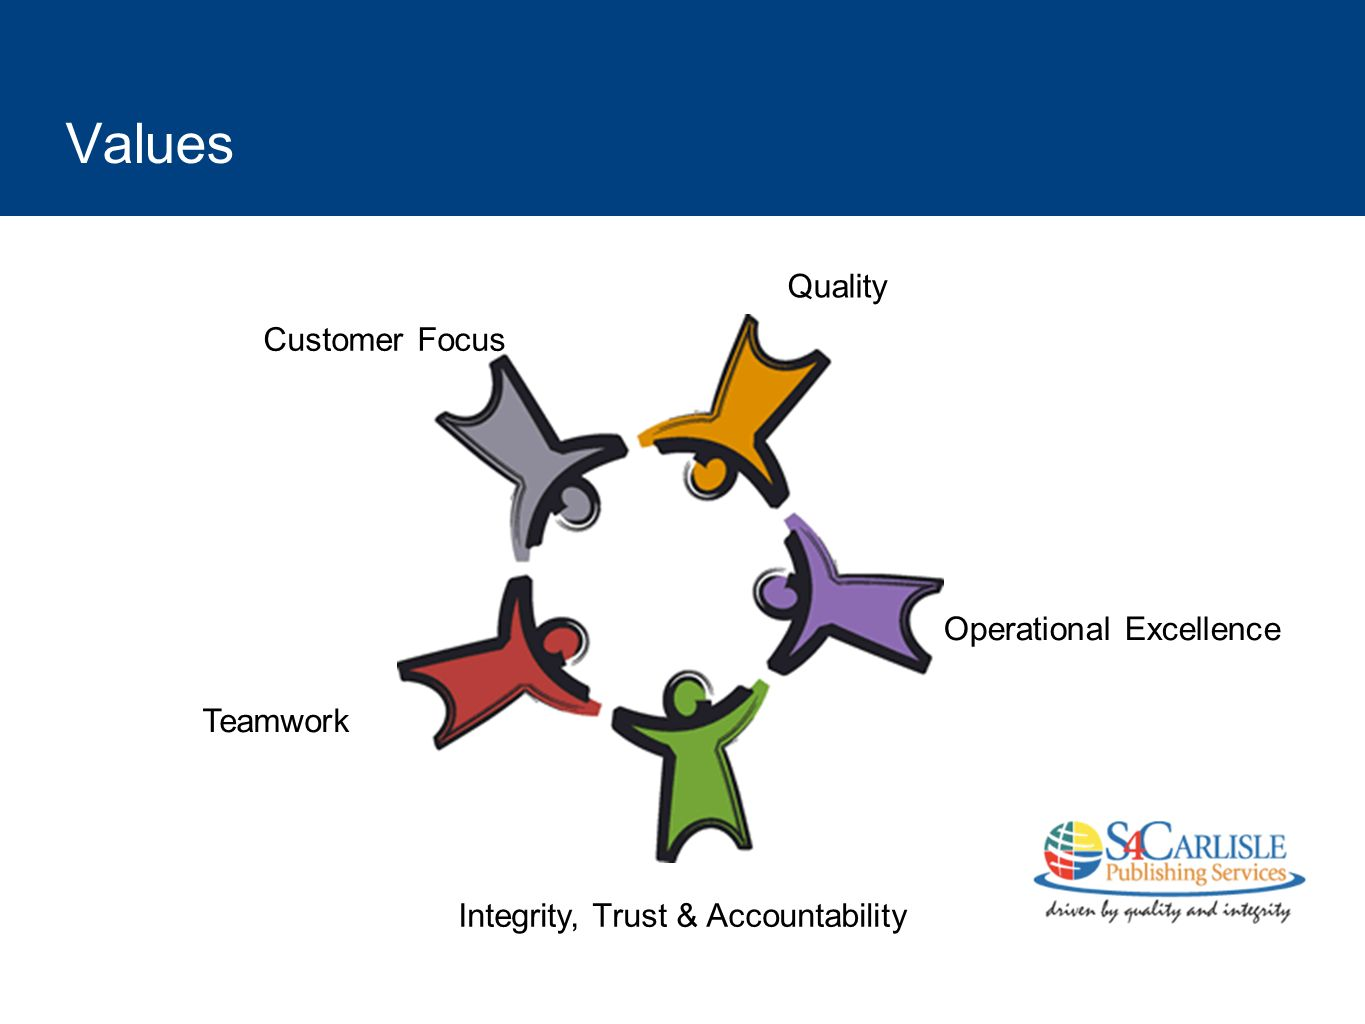 Values Customer Focus Quality Operational Excellence Integrity, Trust & Accountability Teamwork